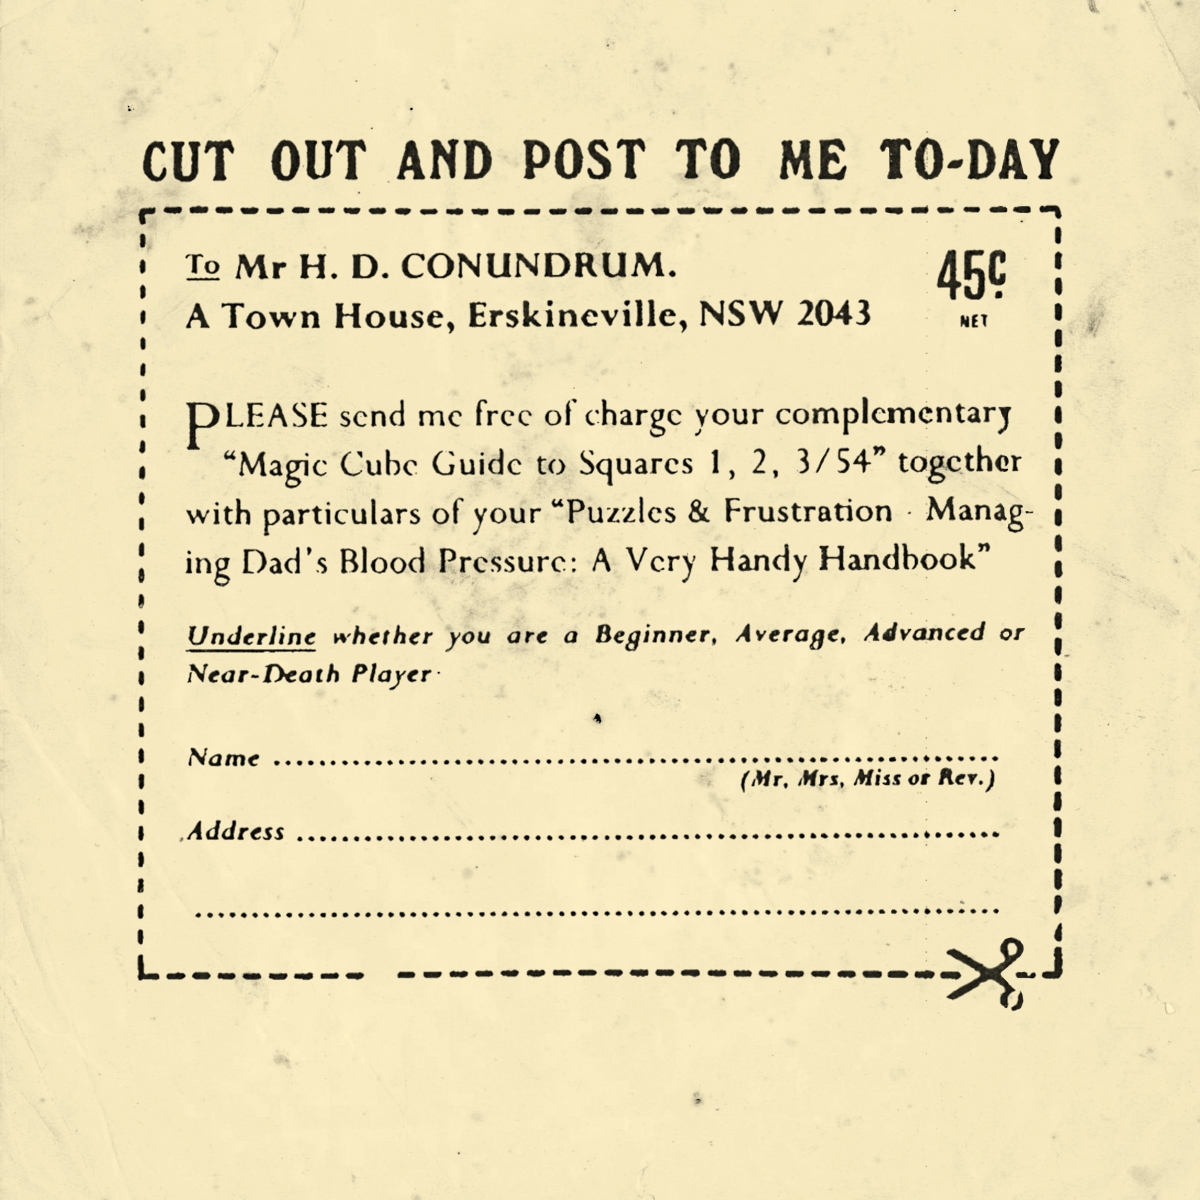 An advertisement mailer for the Hum Drum Conundrums.